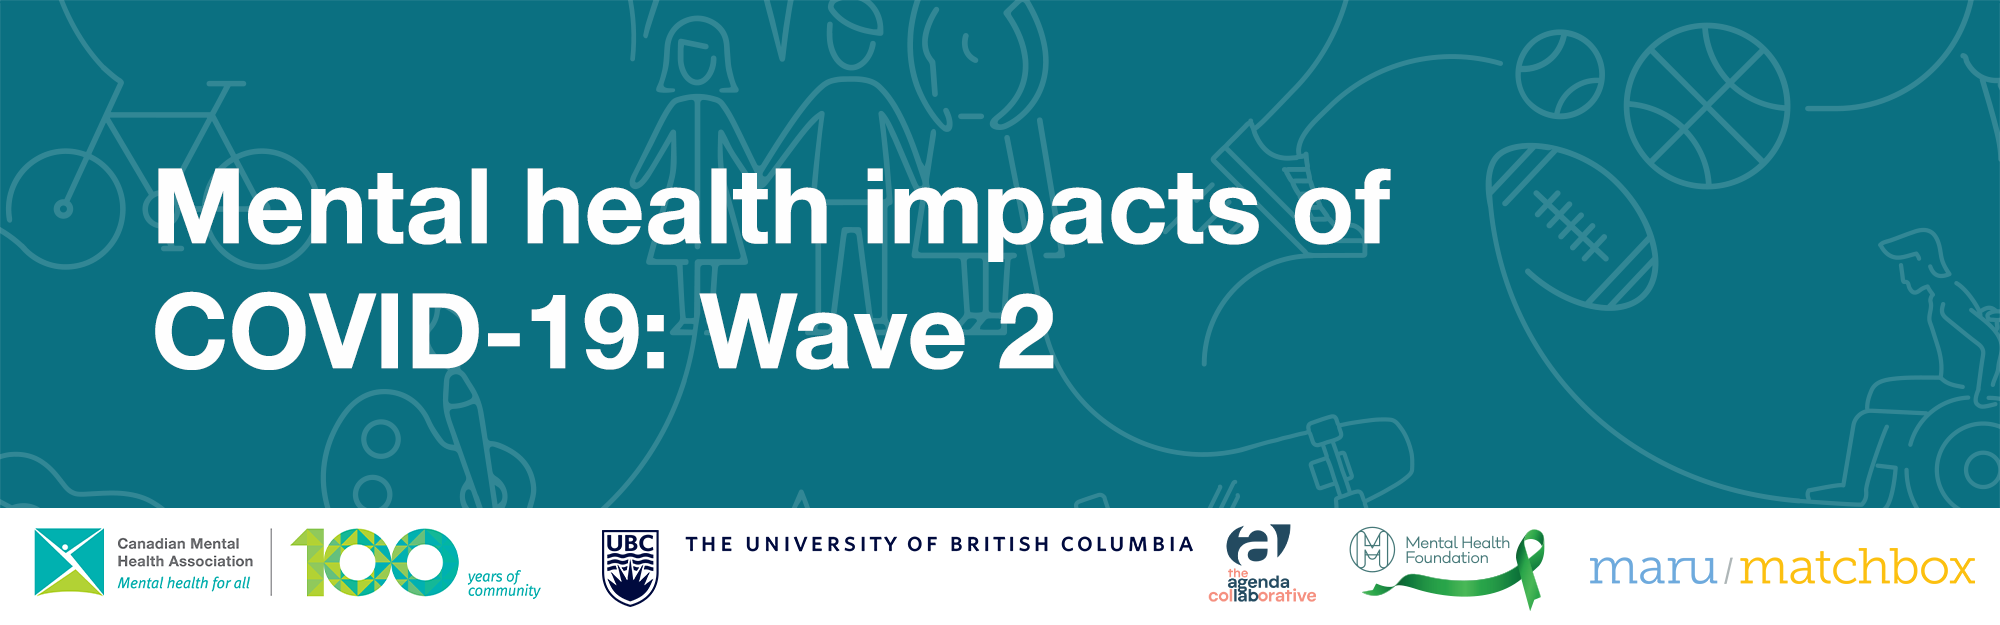 Impacts of Wave 2